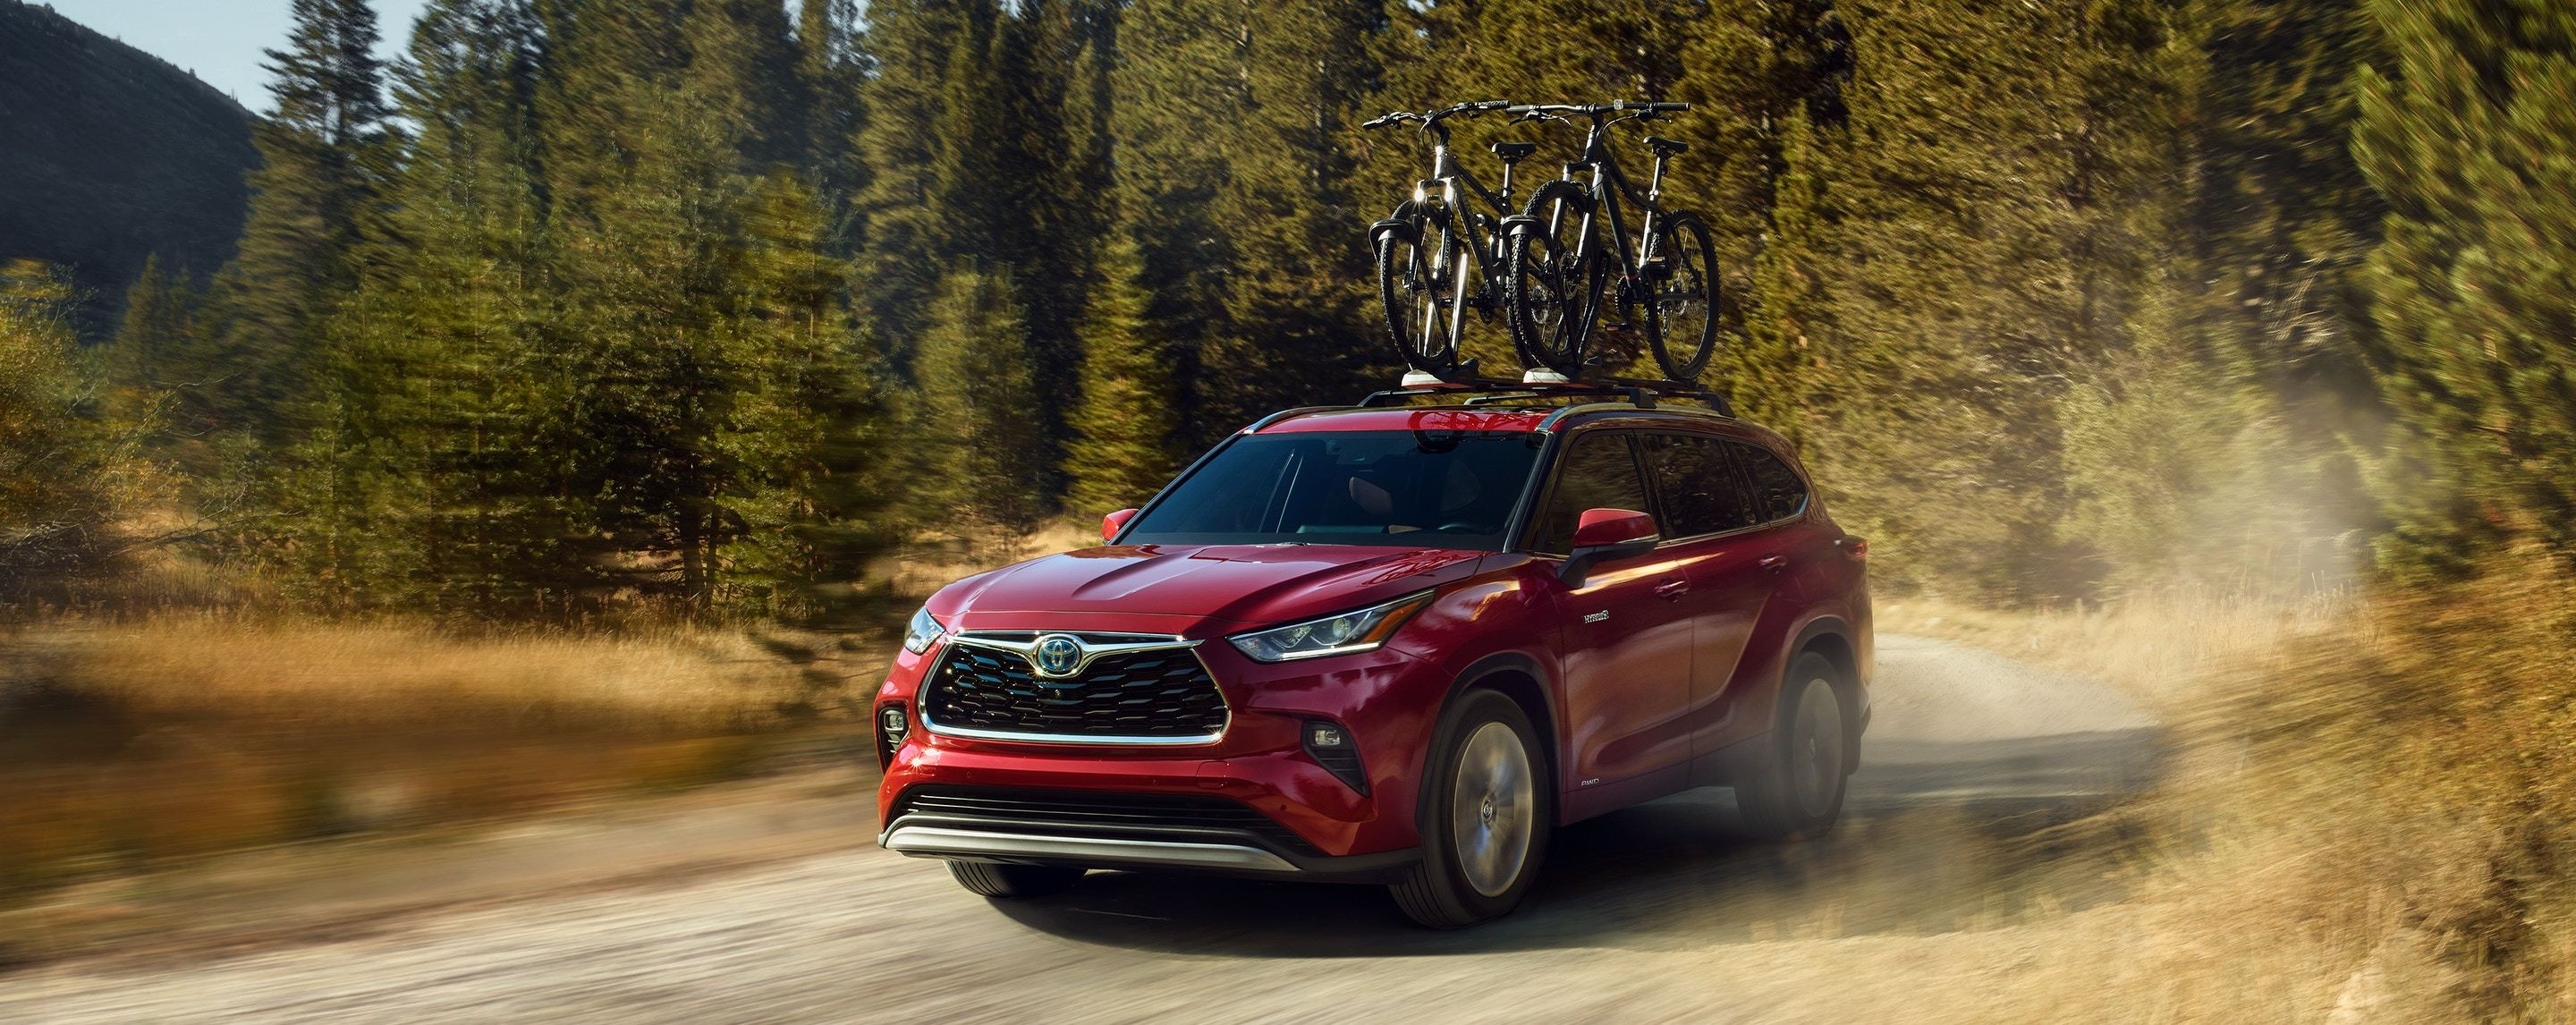 2020 Toyota Highlander Lease in Lombard, IL